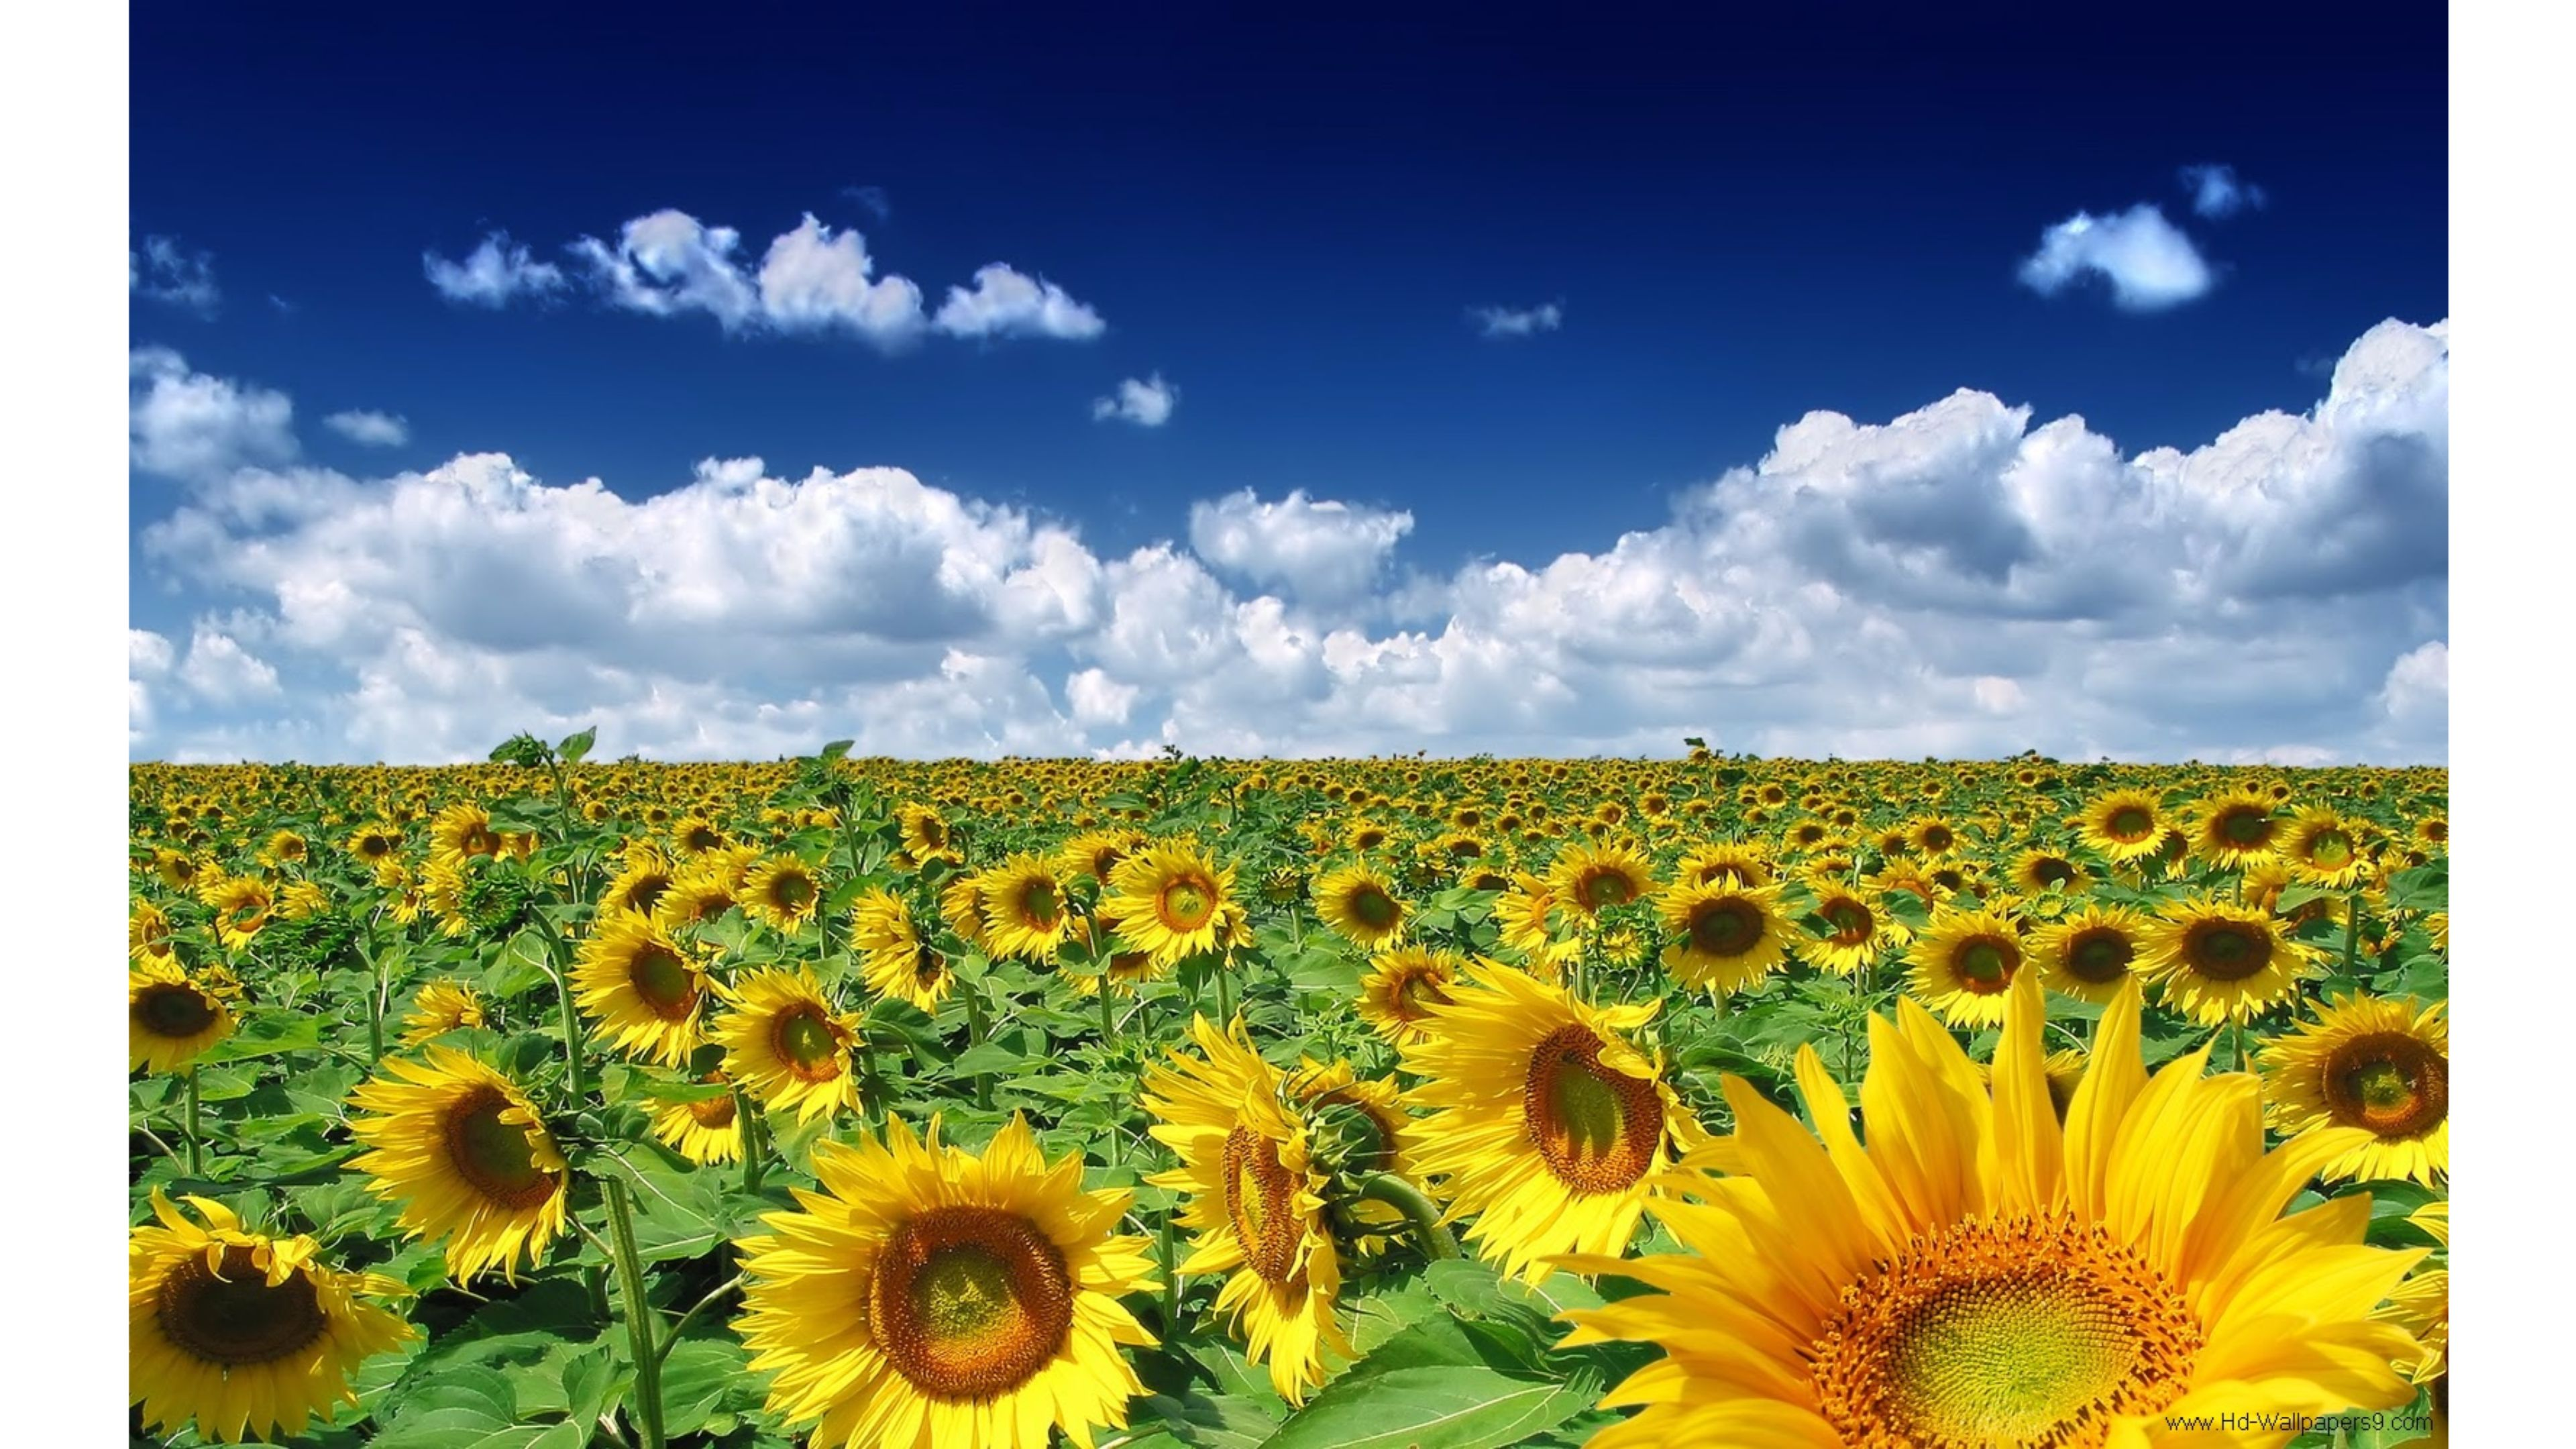 sunflowers wallpapers 4k for your phone and desktop screen